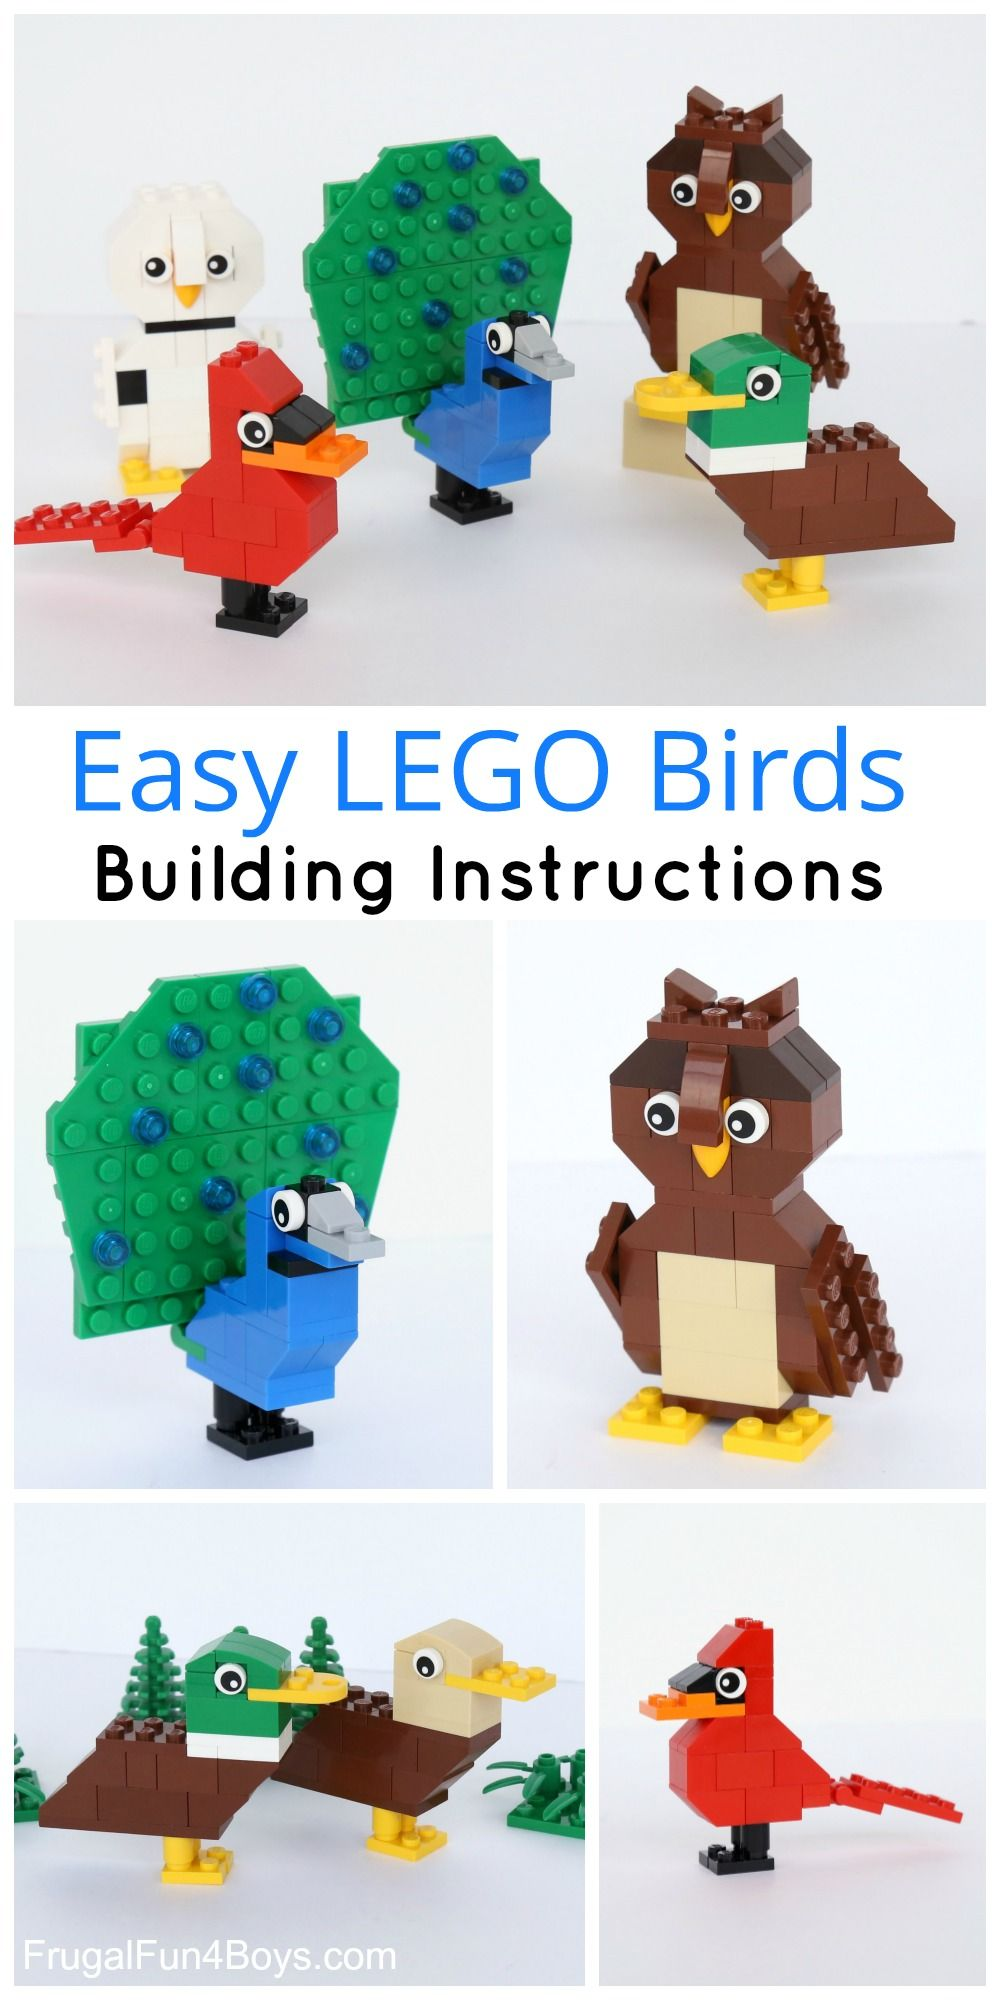 Simple Brick Birds Building Instructions Frugal Fun For Boys And